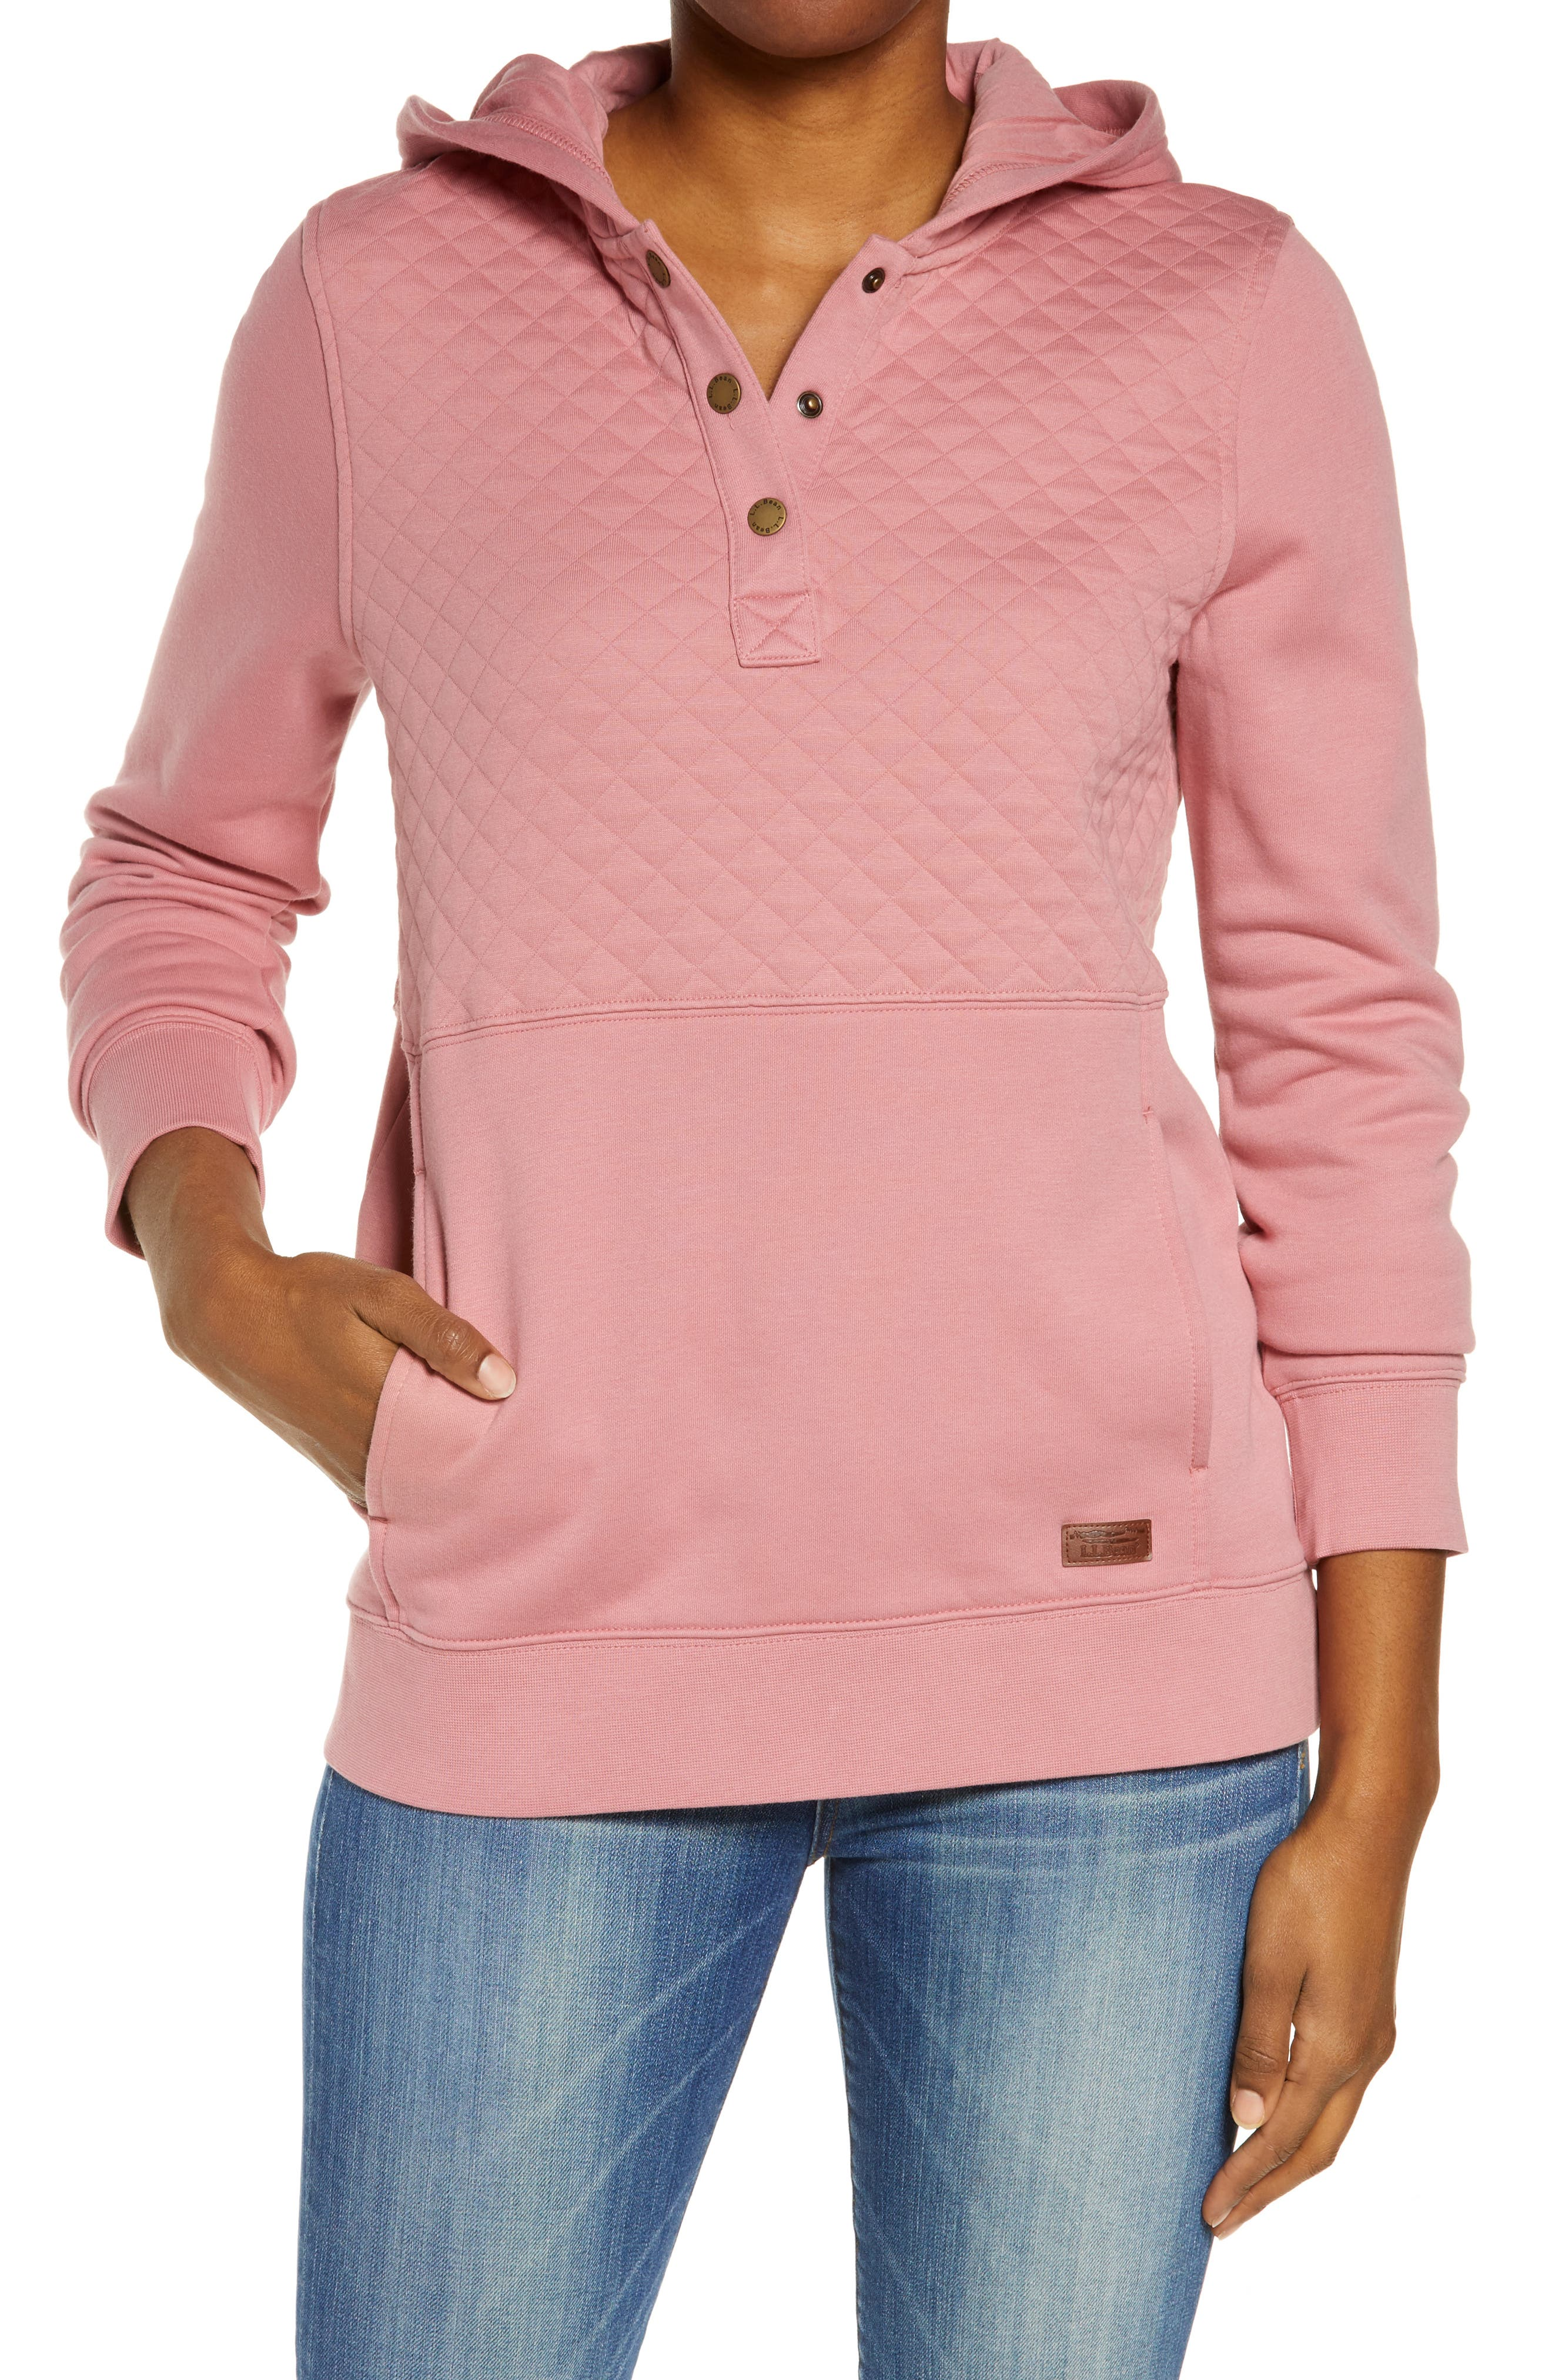 Quilted Hooded Sweatshirt